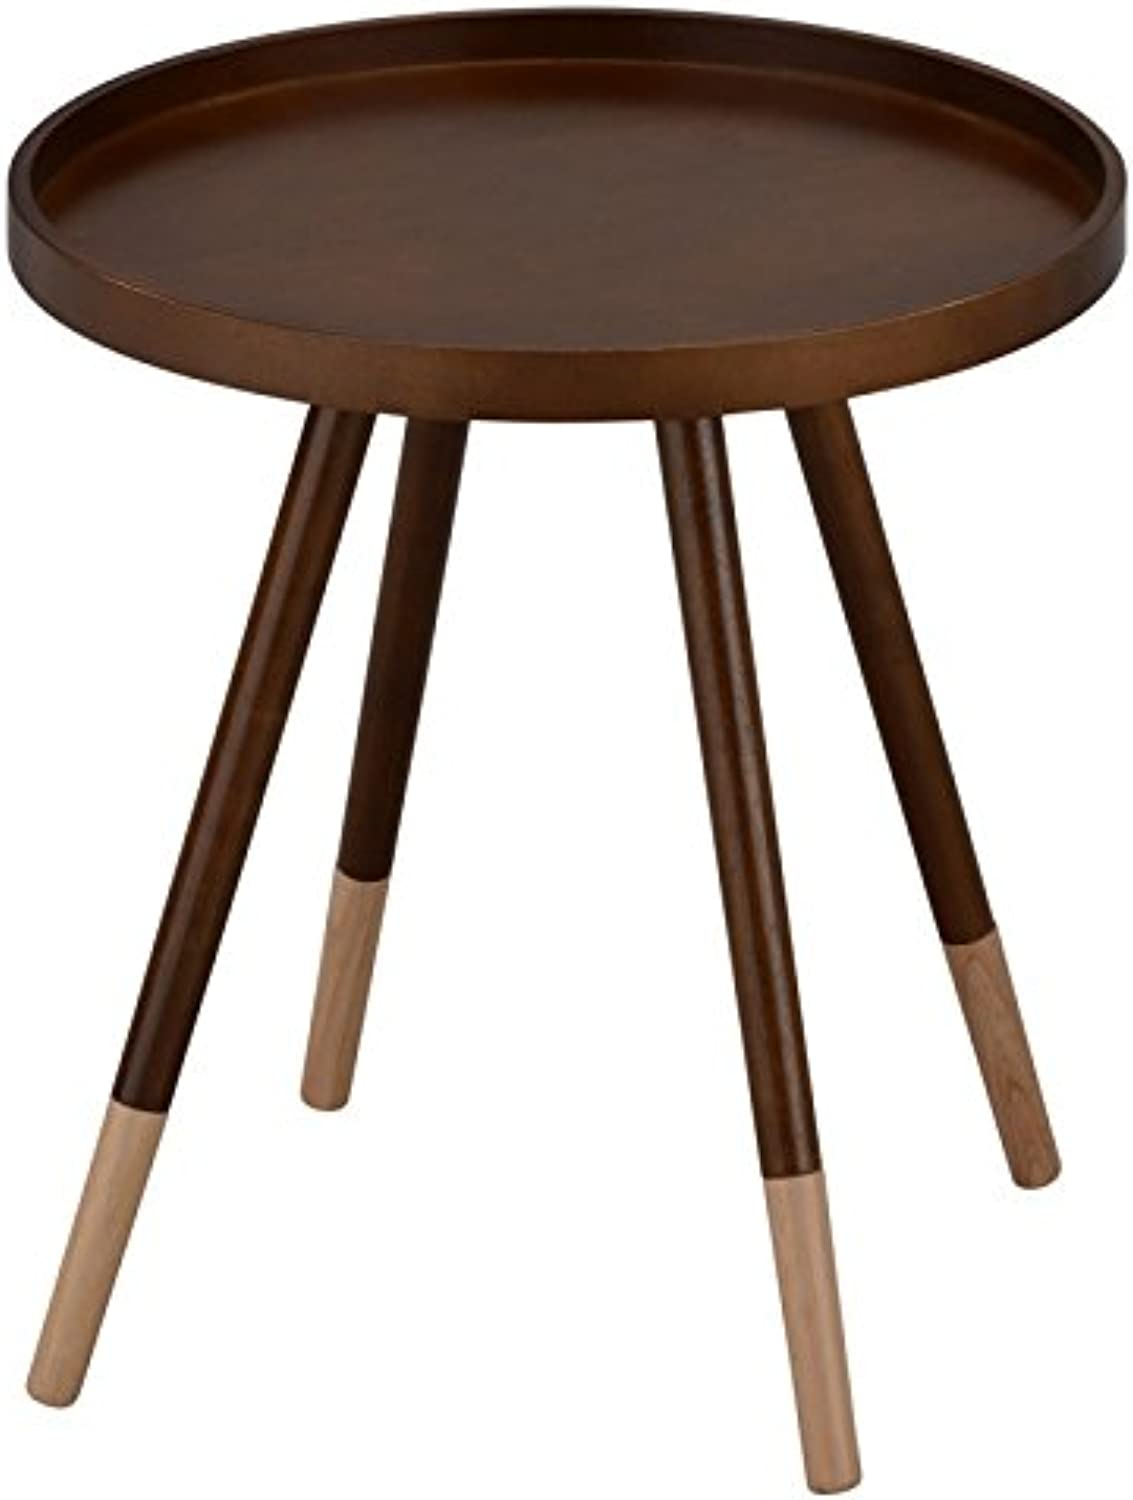 OBI, Solid Wood, Mid-Century, Round, Accent Side End Table, Night Stand in Walnut